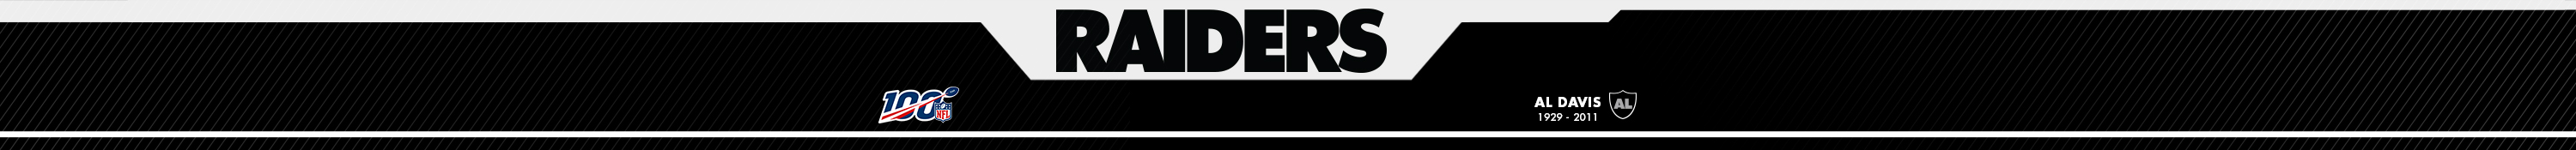 Raiders Radio Network | Raiders com